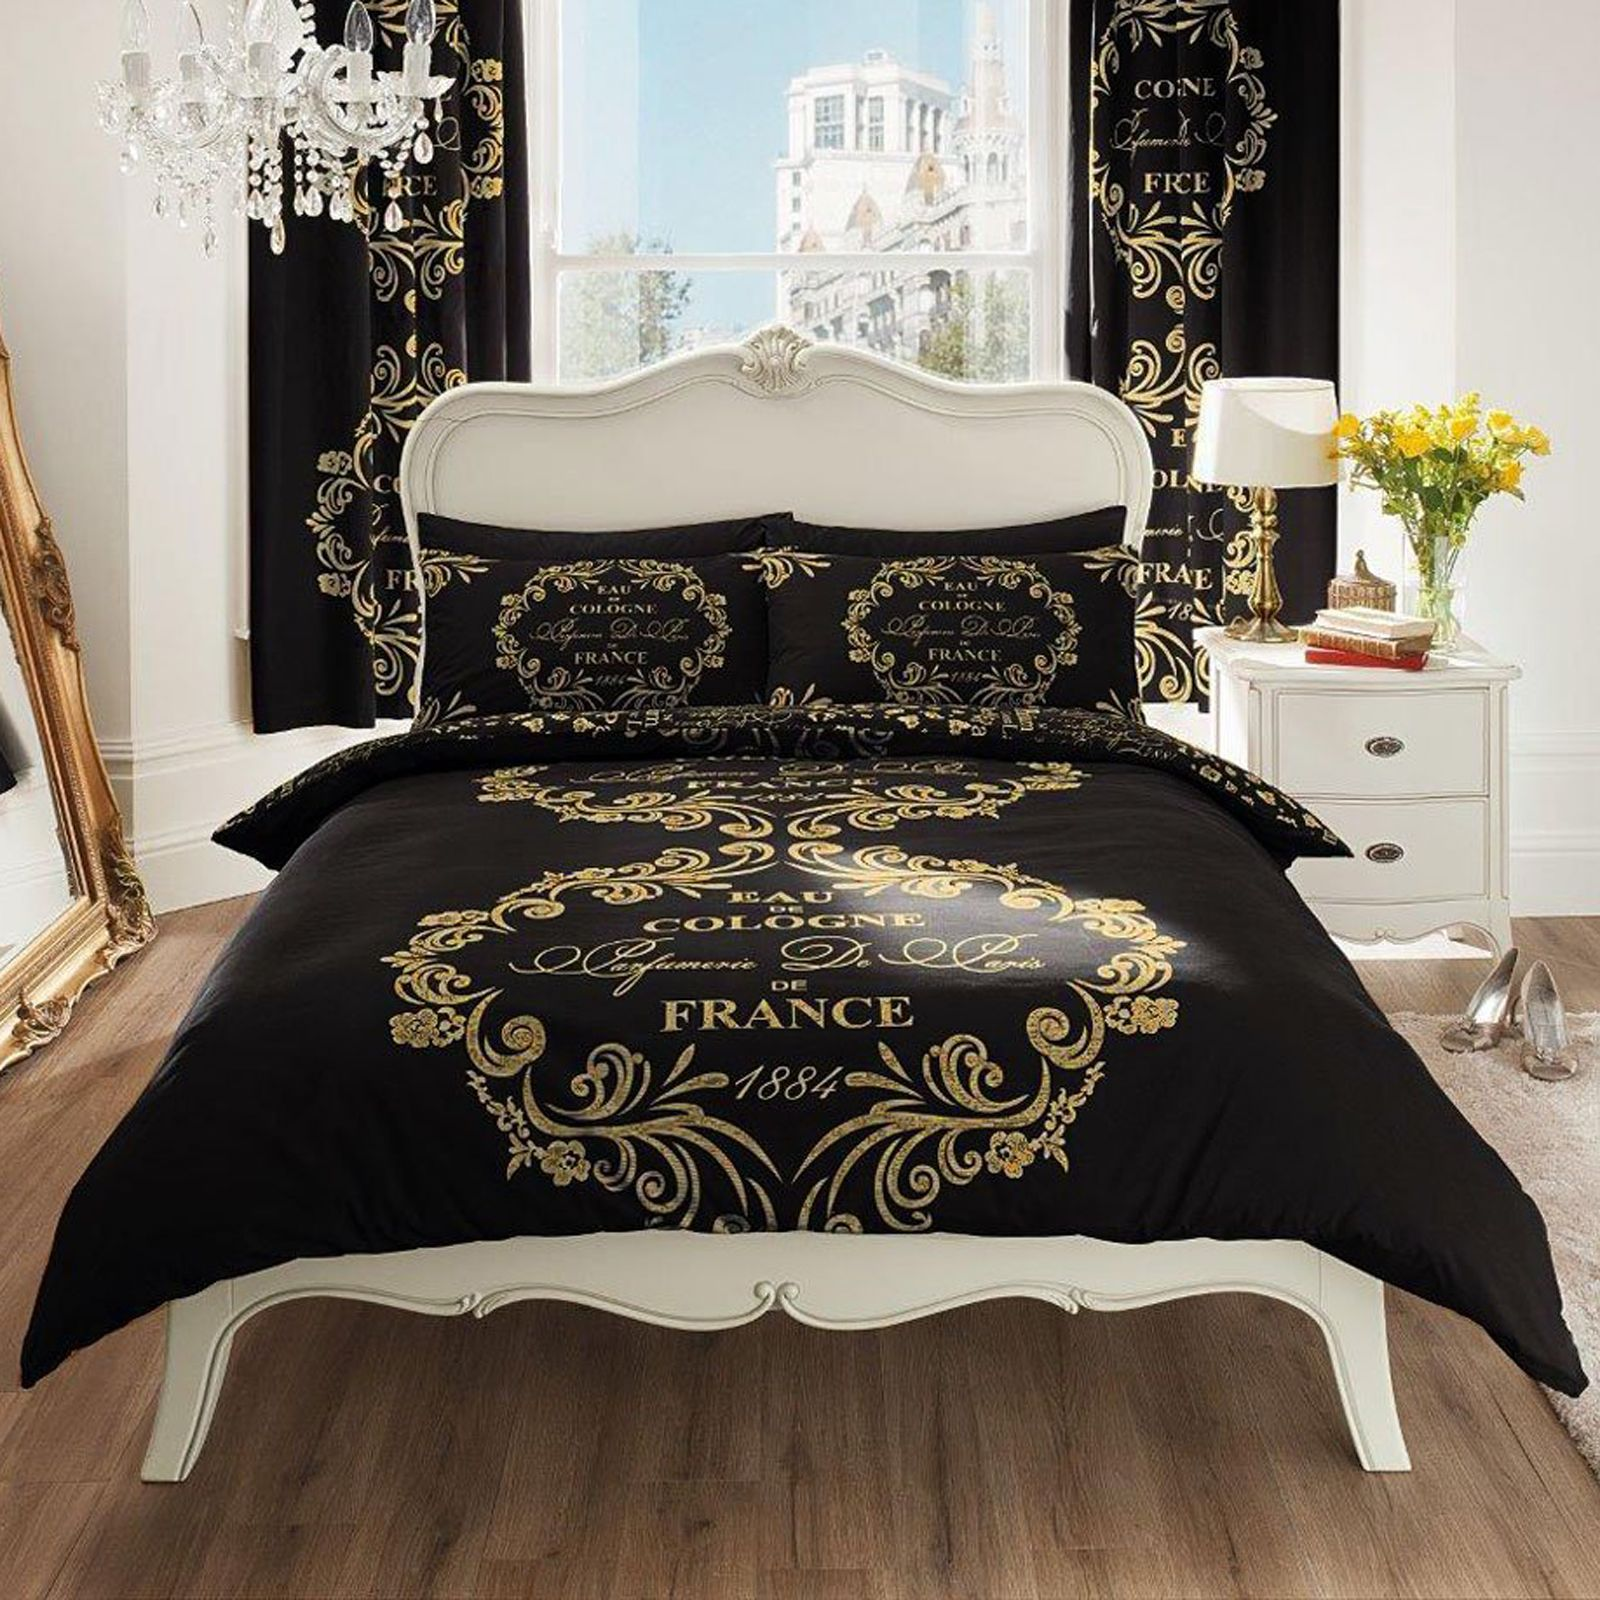 paris texte set couvre lit double lot parure de lit neuf noir ebay. Black Bedroom Furniture Sets. Home Design Ideas